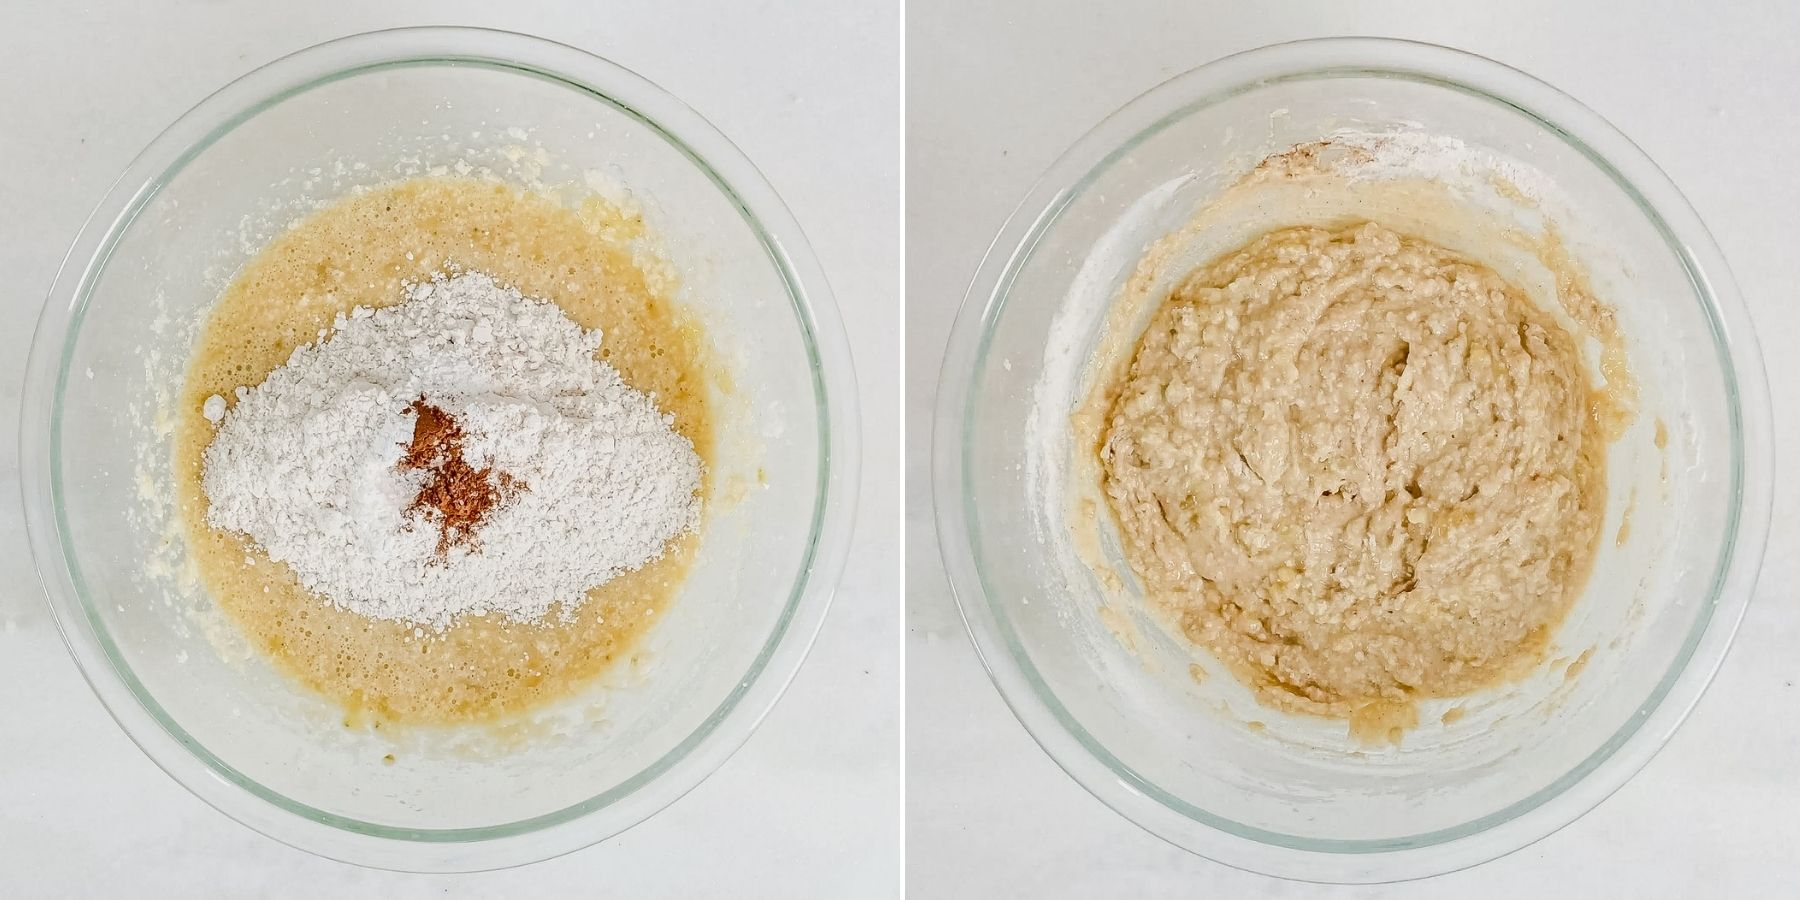 collage of two steps showing how to make banana muffin batter